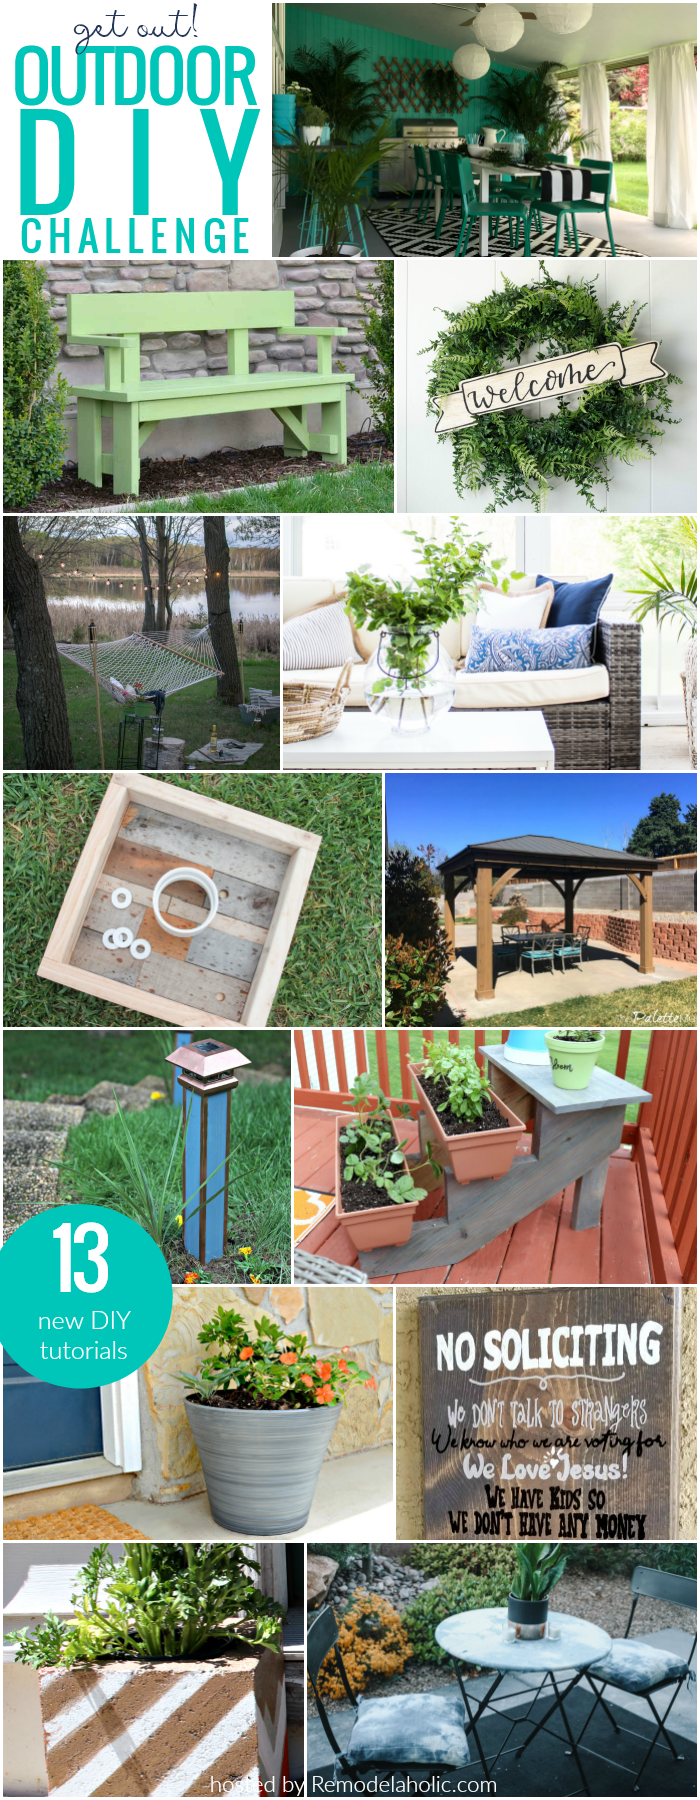 The BEST Outdoor DIY Projects for Your Home, Garden, Patio and Porch | free outdoor building plans + tutorials #remodelaholic